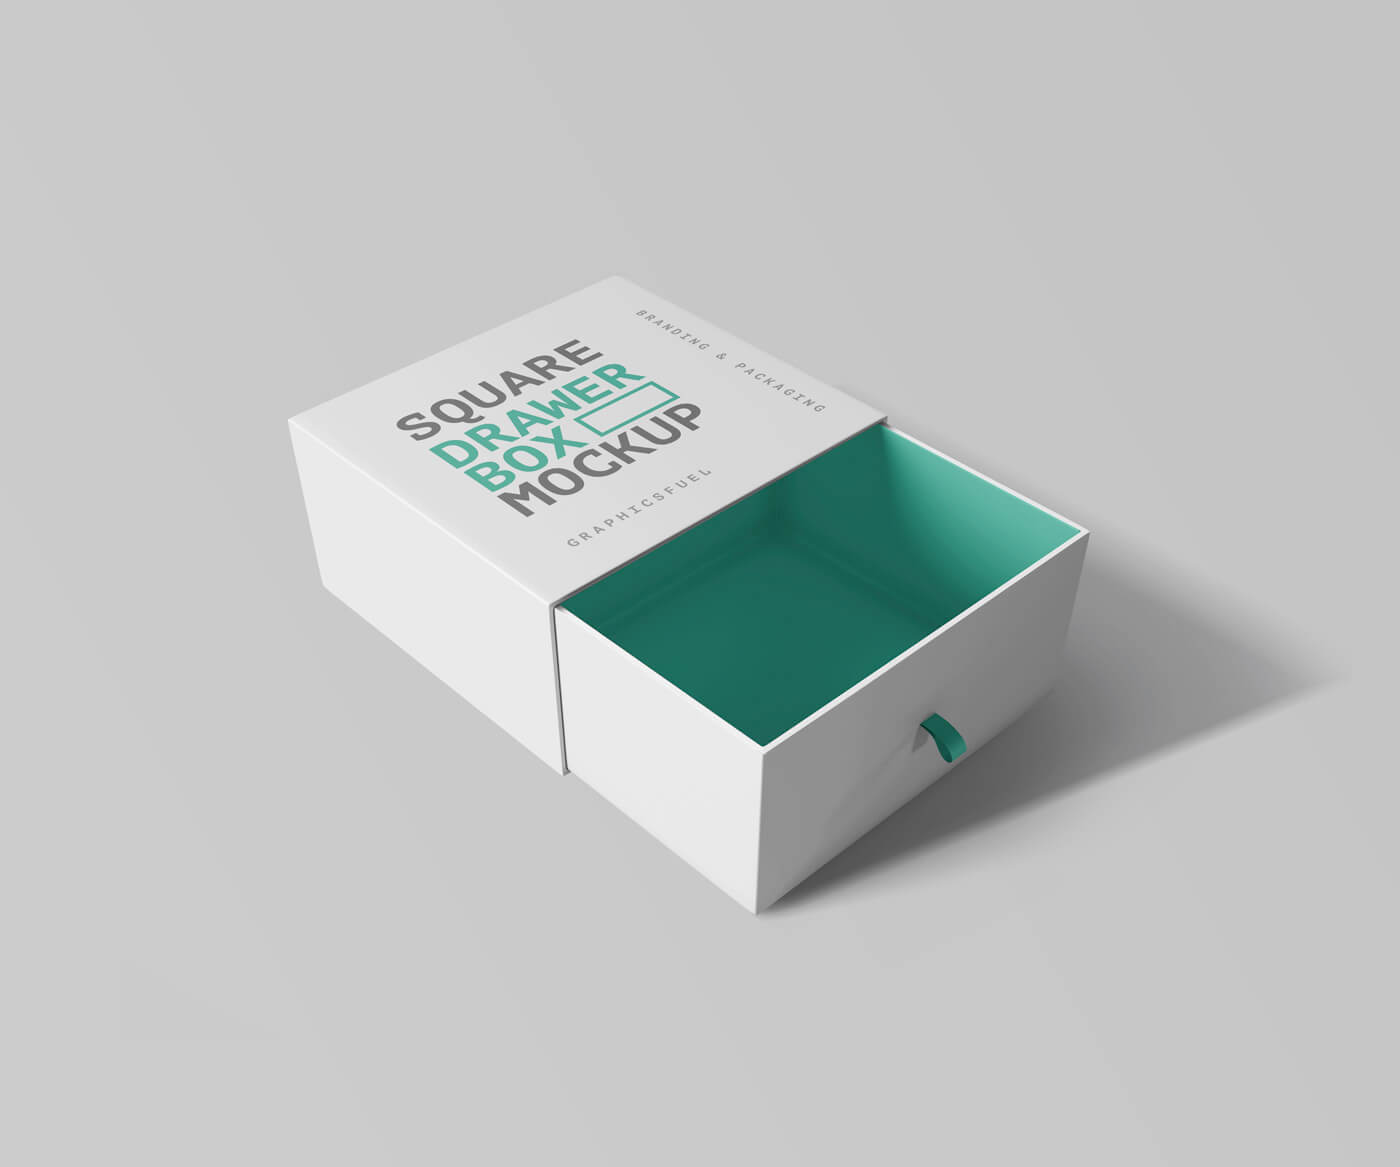 Free Designer Sleeves Drawer Box Mockup PSD Template